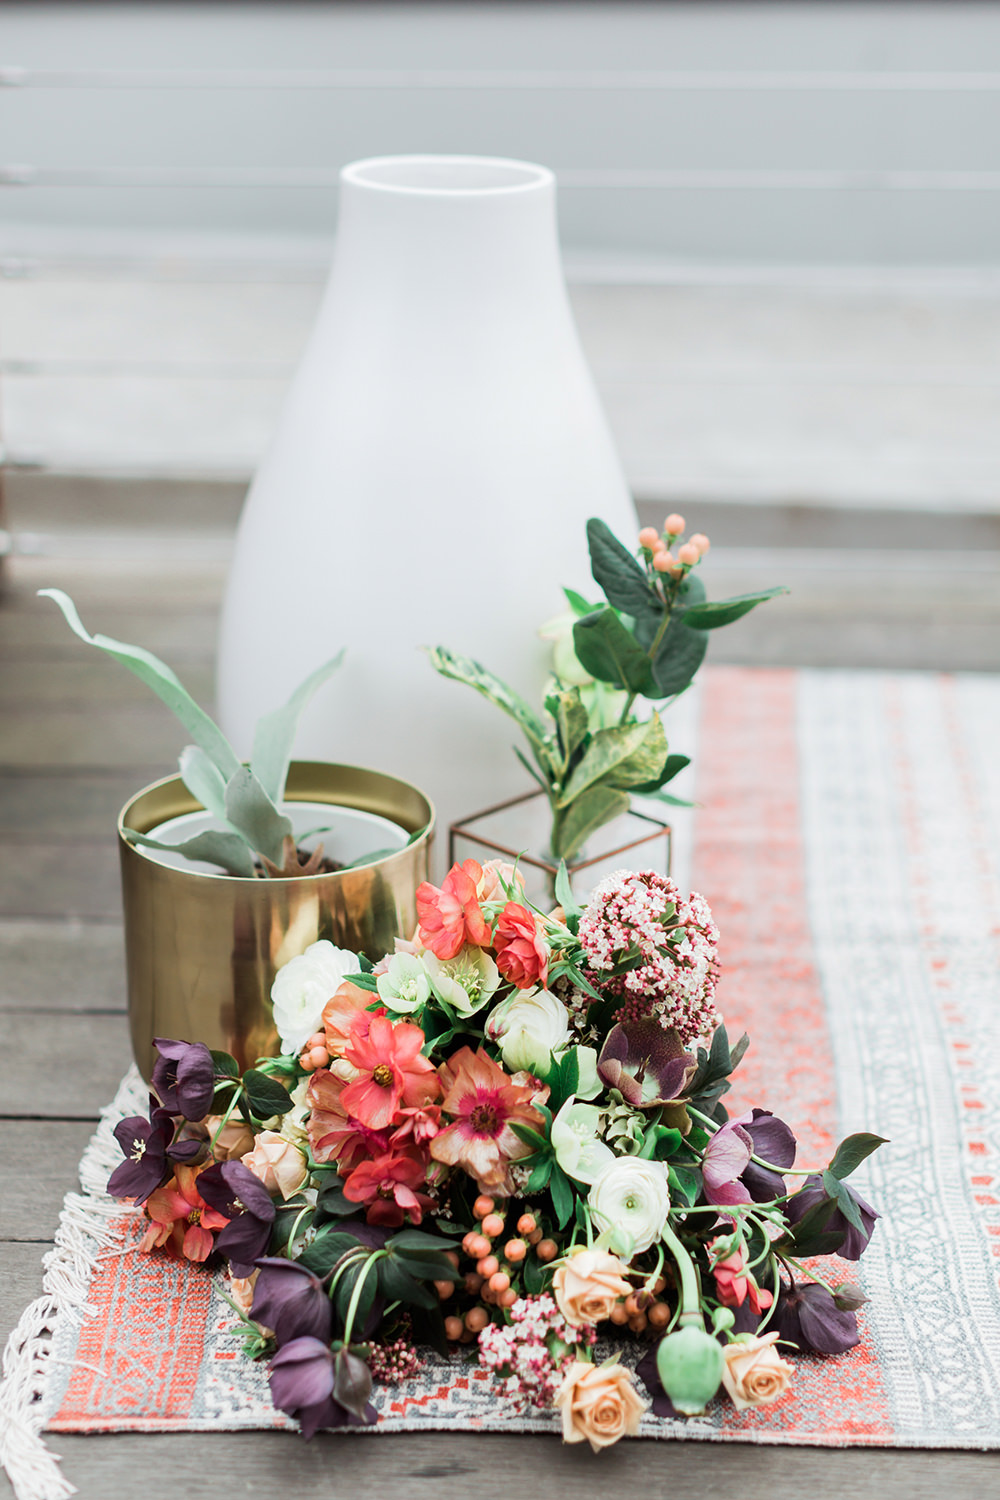 ceremony flowers - photo by Gina Neal Photography https://ruffledblog.com/portland-coffee-lovers-elopement-inspiration